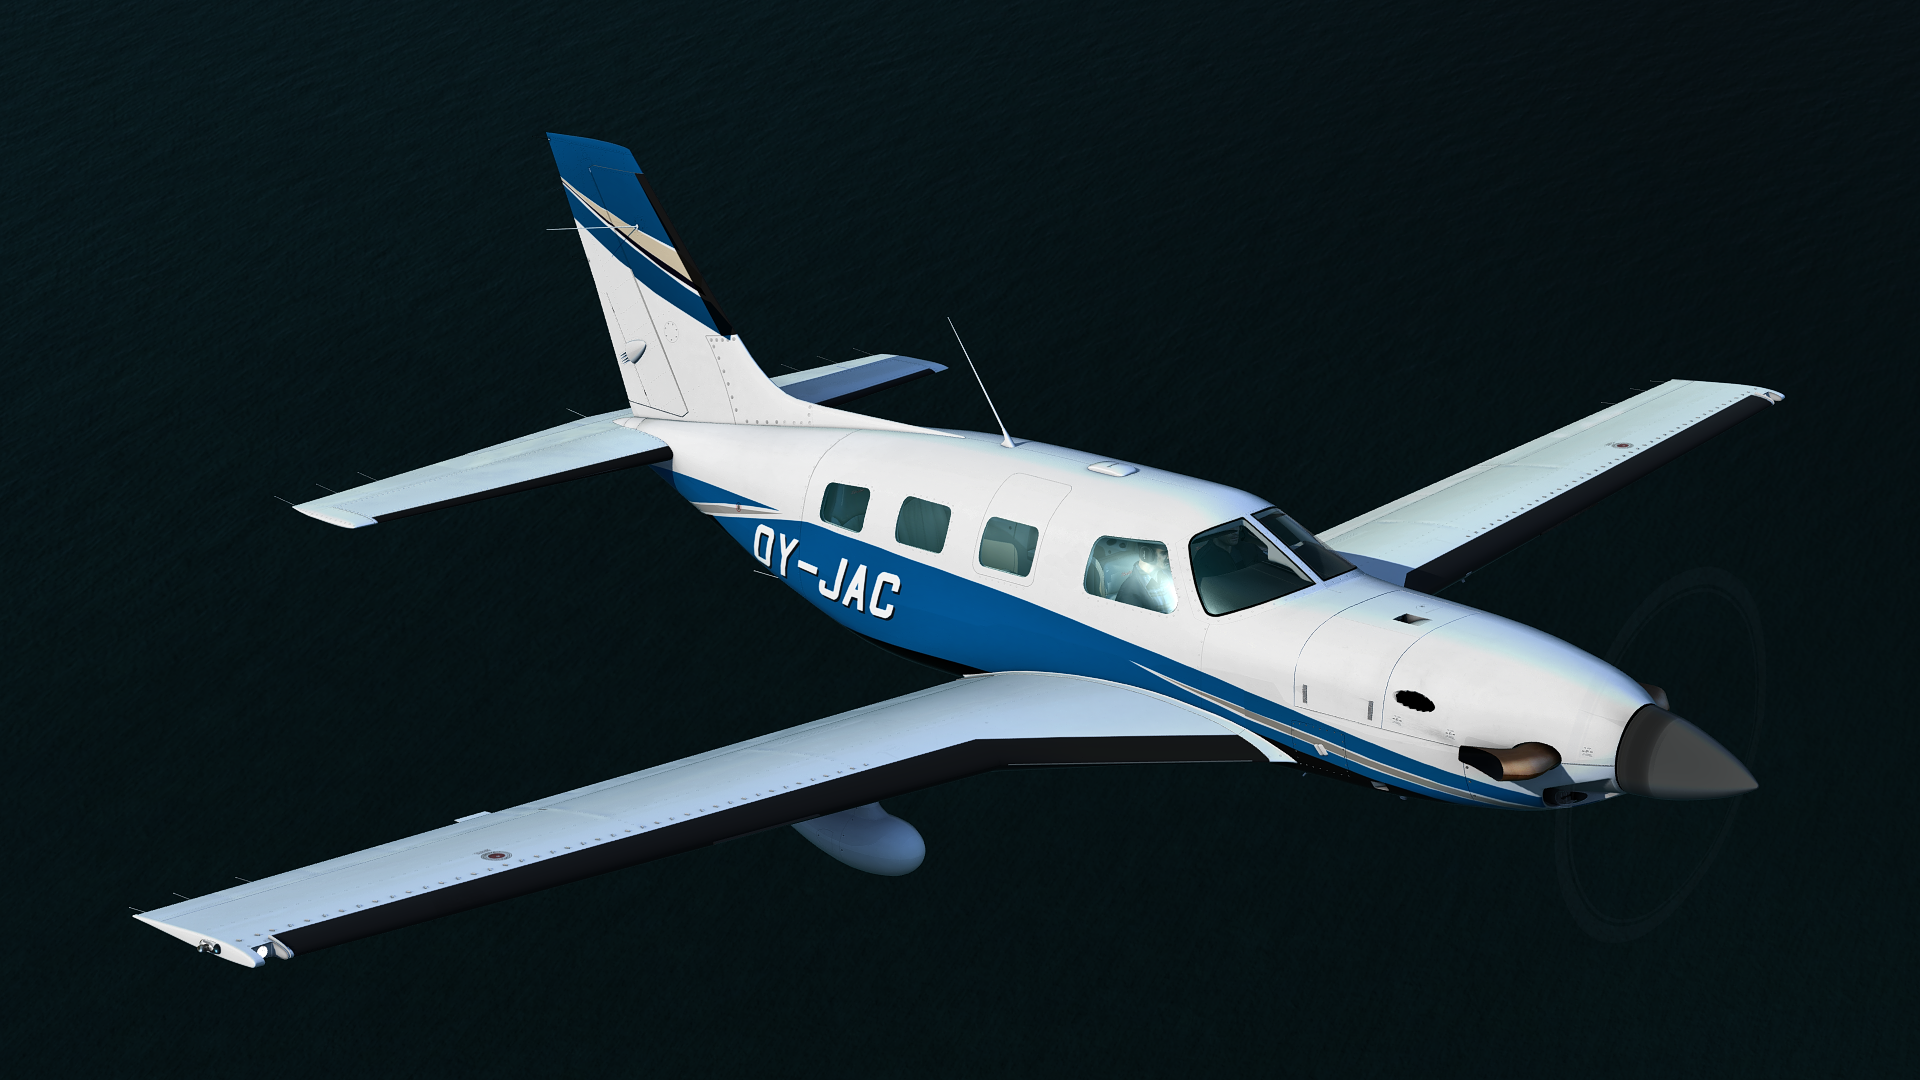 Carenado Piper PA46 Meridian - Click the download button to start downloading the Reflection Profiles for the Majestic Carenado Piper PA46 Meridian.